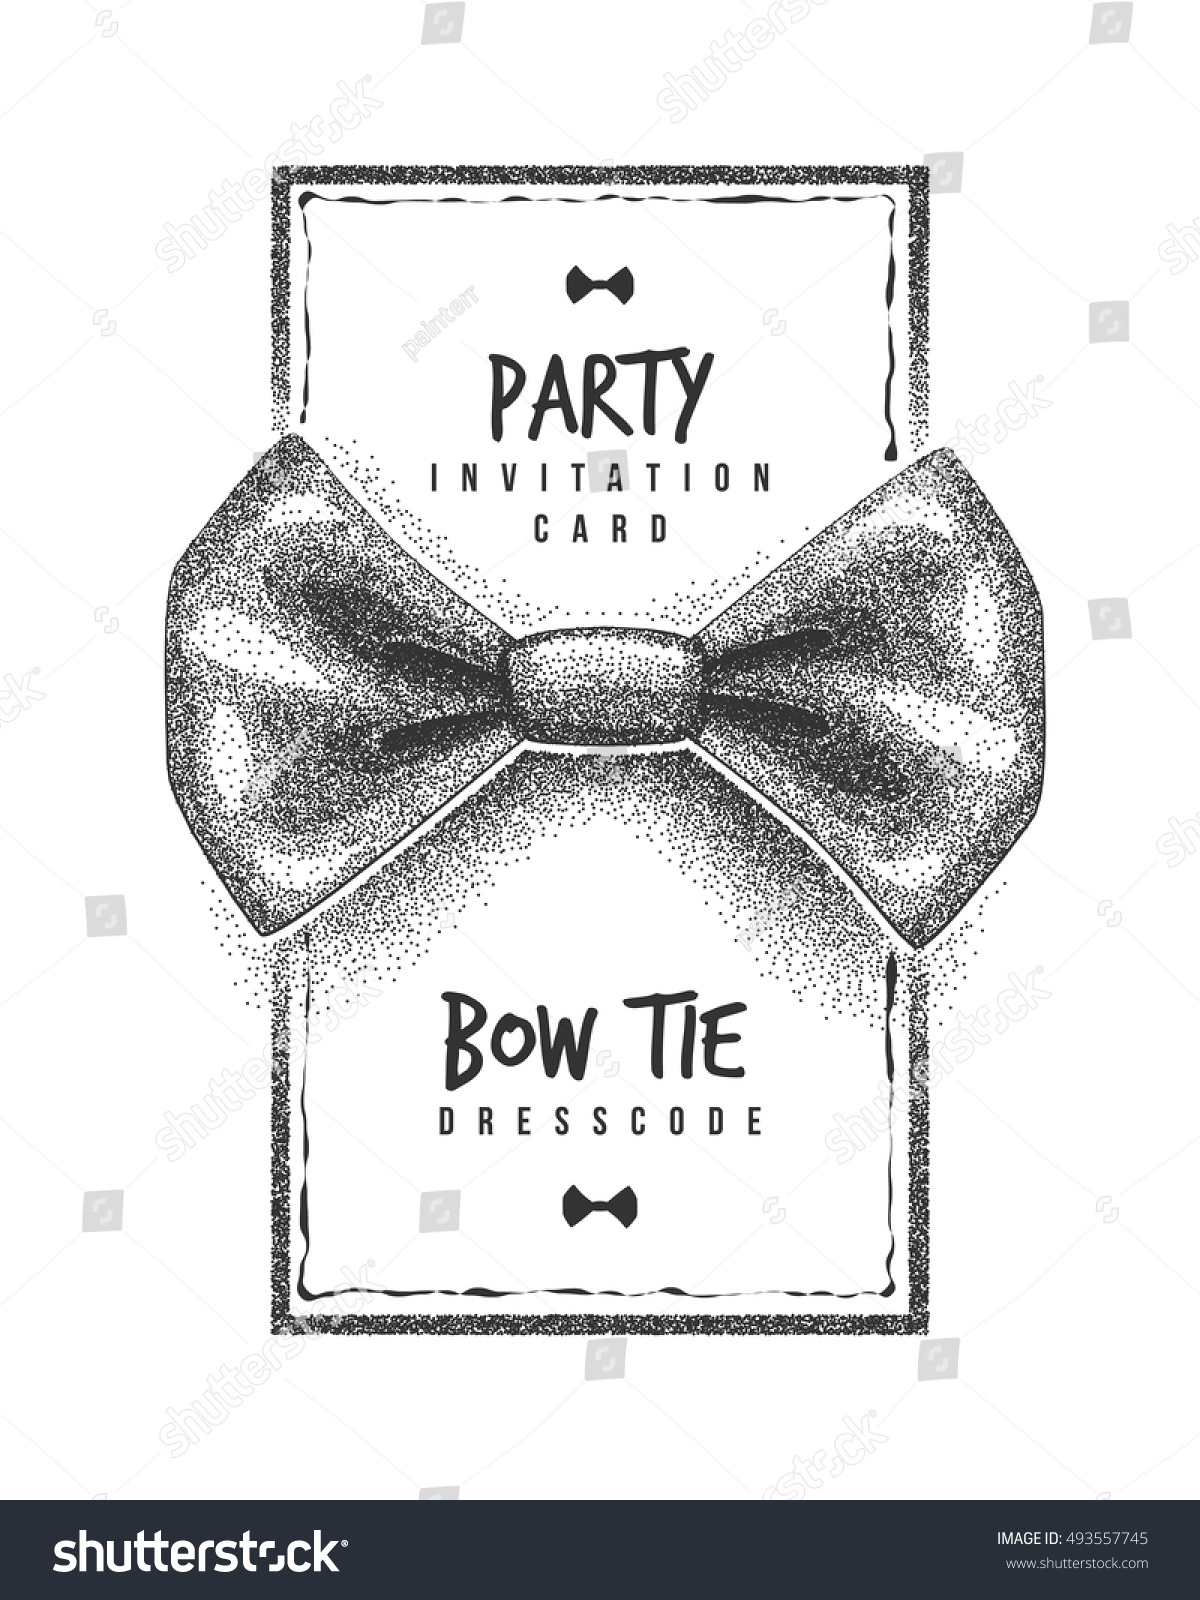 Bow Tie Party Invitation Card Dress Stock Vector 493557745 ...